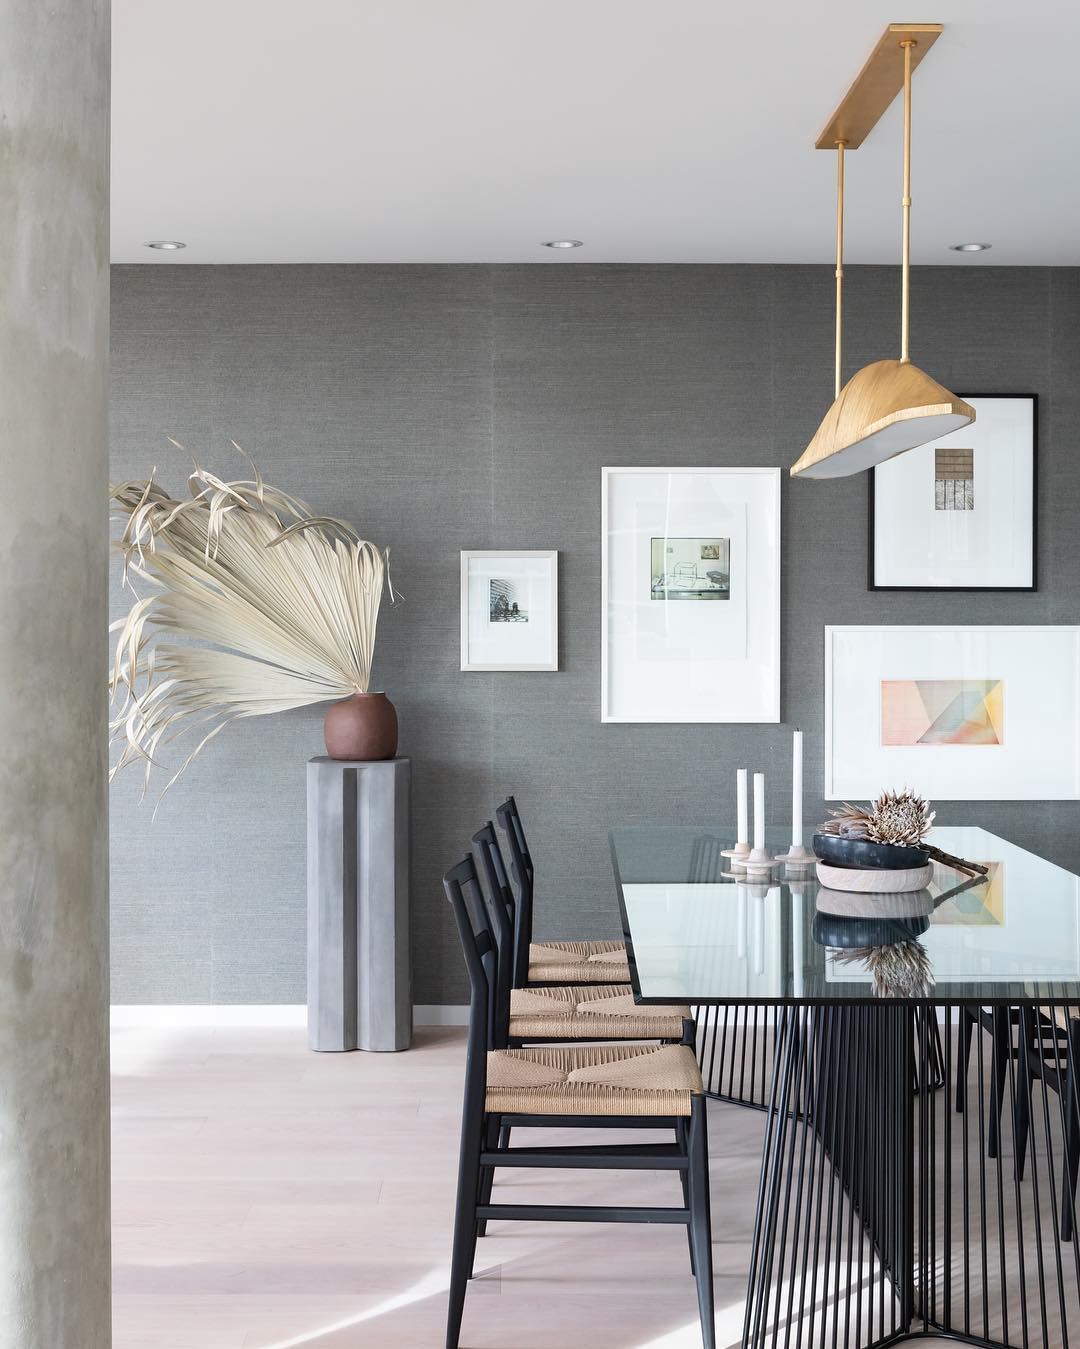 Modernly designed dining area with gray paint and gallery wall